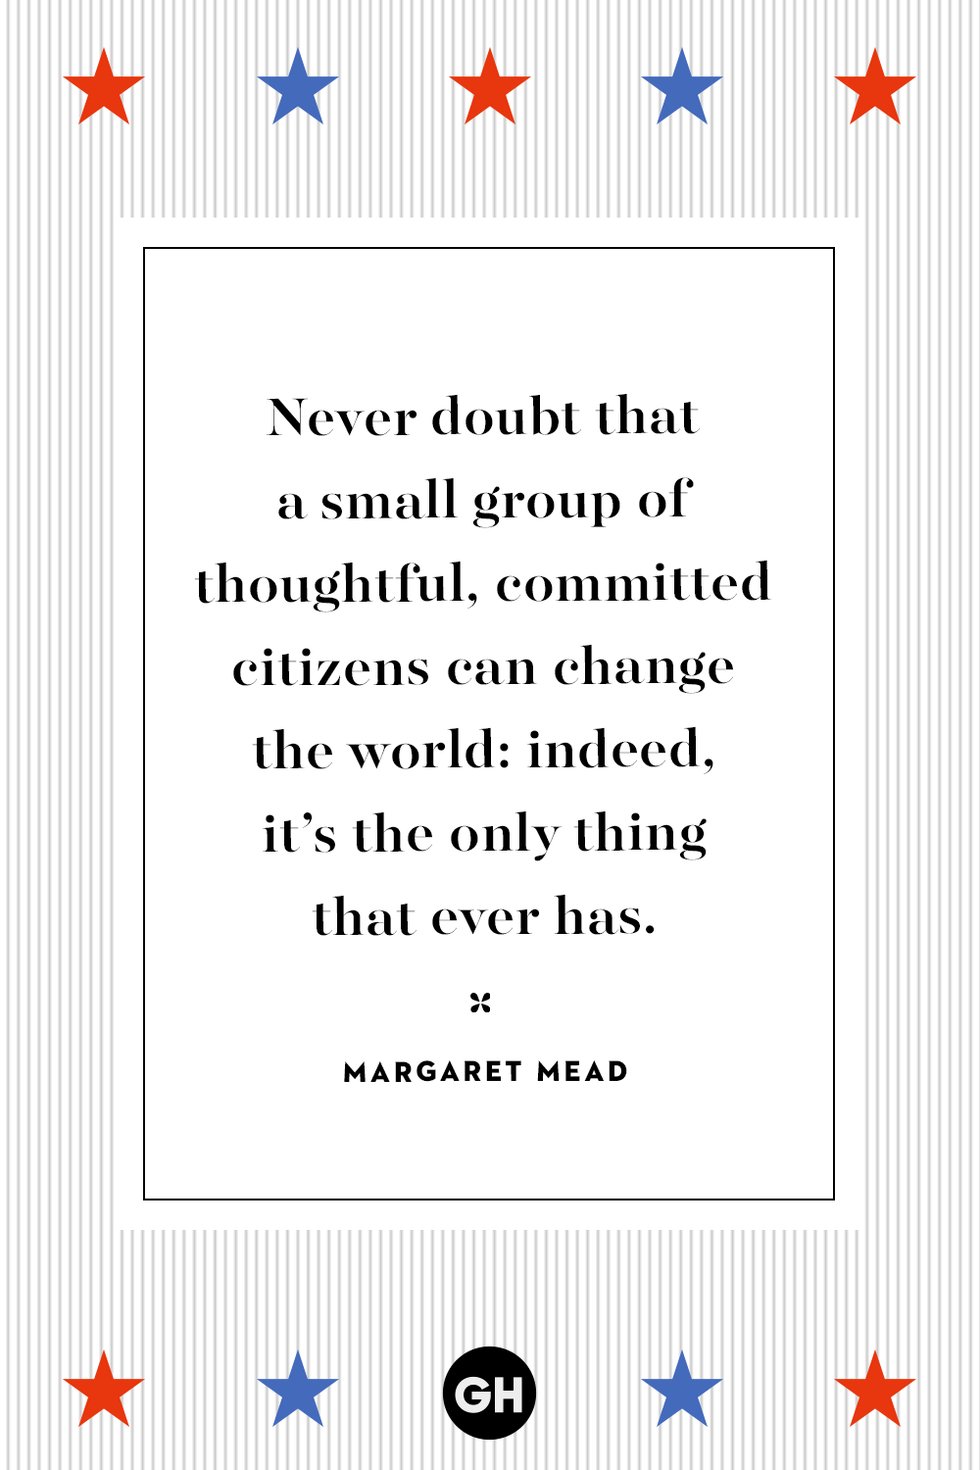 election-quotes-voting-quotes-15-margaret-mead-1567019364